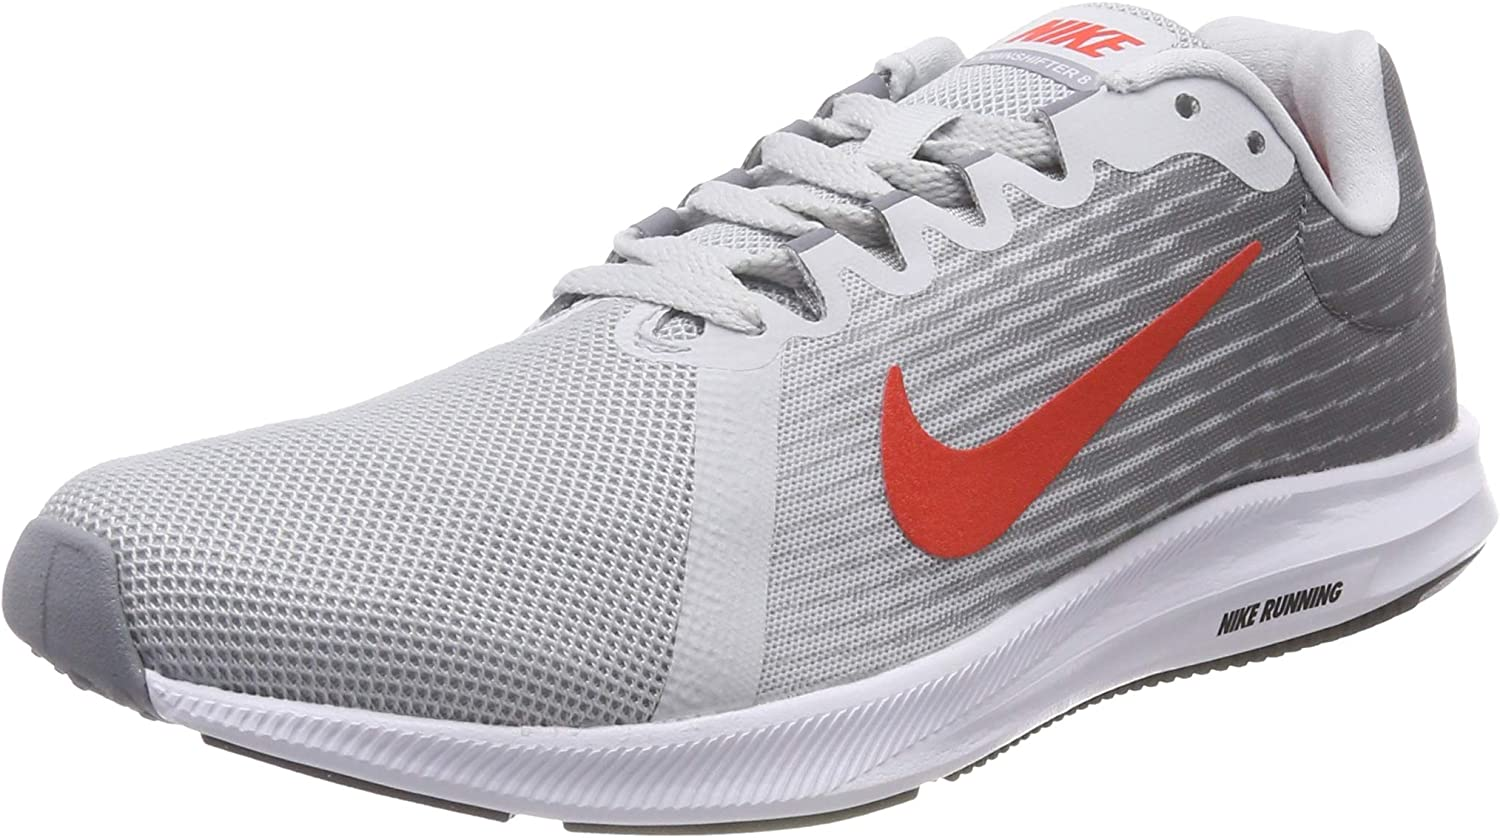 NIKE Downshifter 8, Zapatillas de Deporte Unisex Adulto: Amazon.es ...